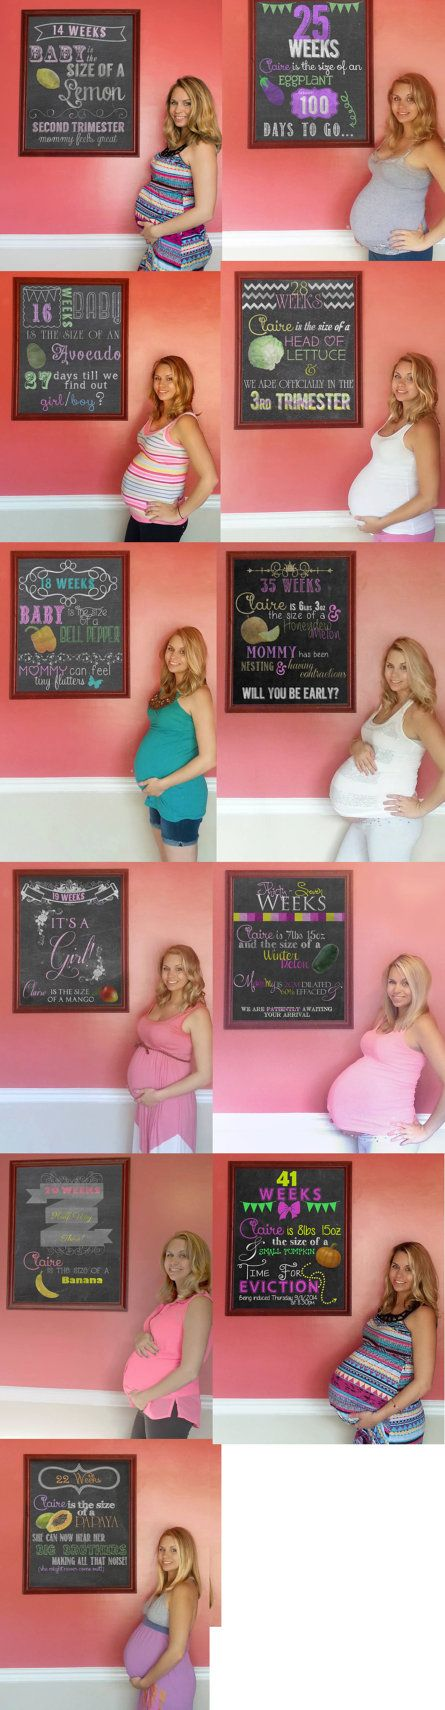 6 weeks - 40 weeks - Custom Weekly Pregnancy Chalkboard Updates  by CayteeRoseDesigns - VARIOUS AFFORDABLE PACKAGES! ---- ♥ --- It's so easy too! ---- ♥ ---  Each week you take a picture of yourself standing next to or holding ANY picture frame in your house. She photoshops the inside of the frame into a chalkboard and add the information of the baby for that week (name and size) and adds ANYTHING CUSTOM you would like it to say! Usually 24 around turn out too!! This is A MUST for any…